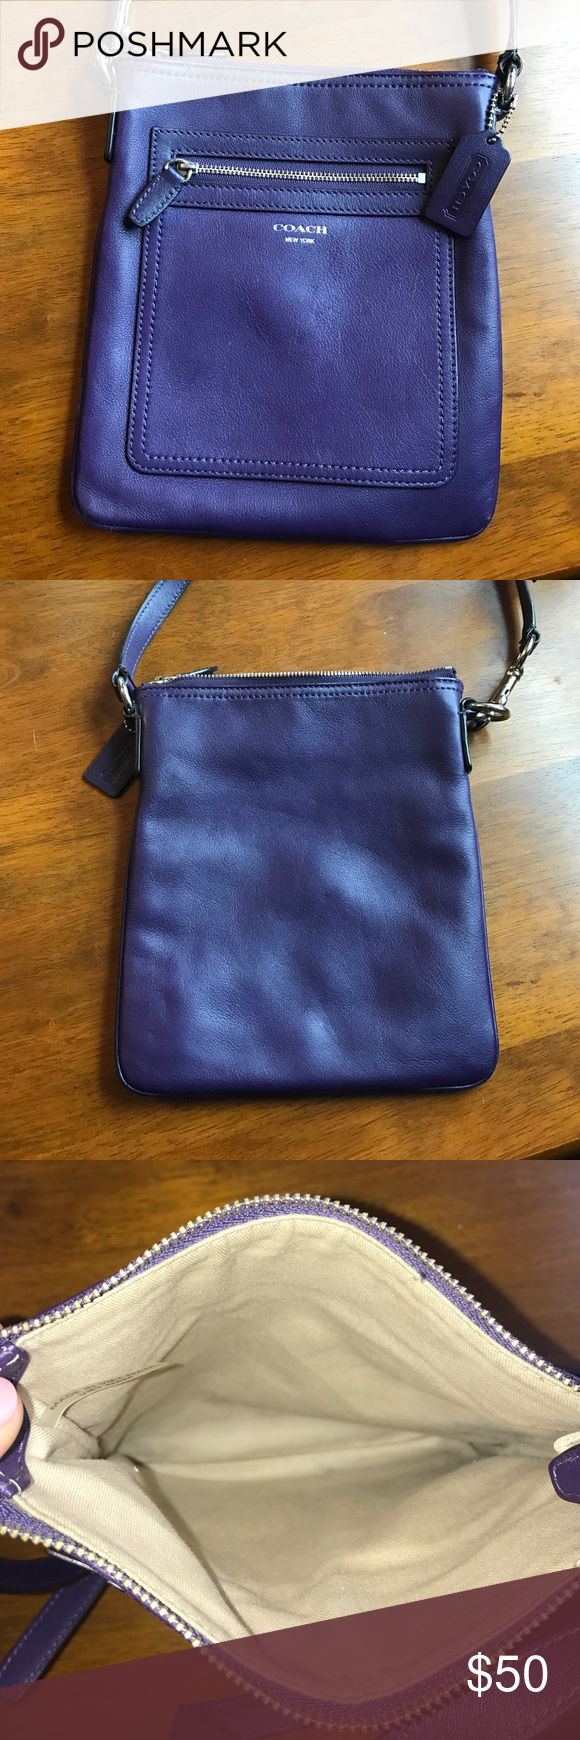 Legacy Coach Swingpack *AUTHENTIC Coach crossbody from the legacy collection with genuine smooth leather. One zip pocket on the front and no interior pockets. Lightly used Coach Bags Crossbody Bags